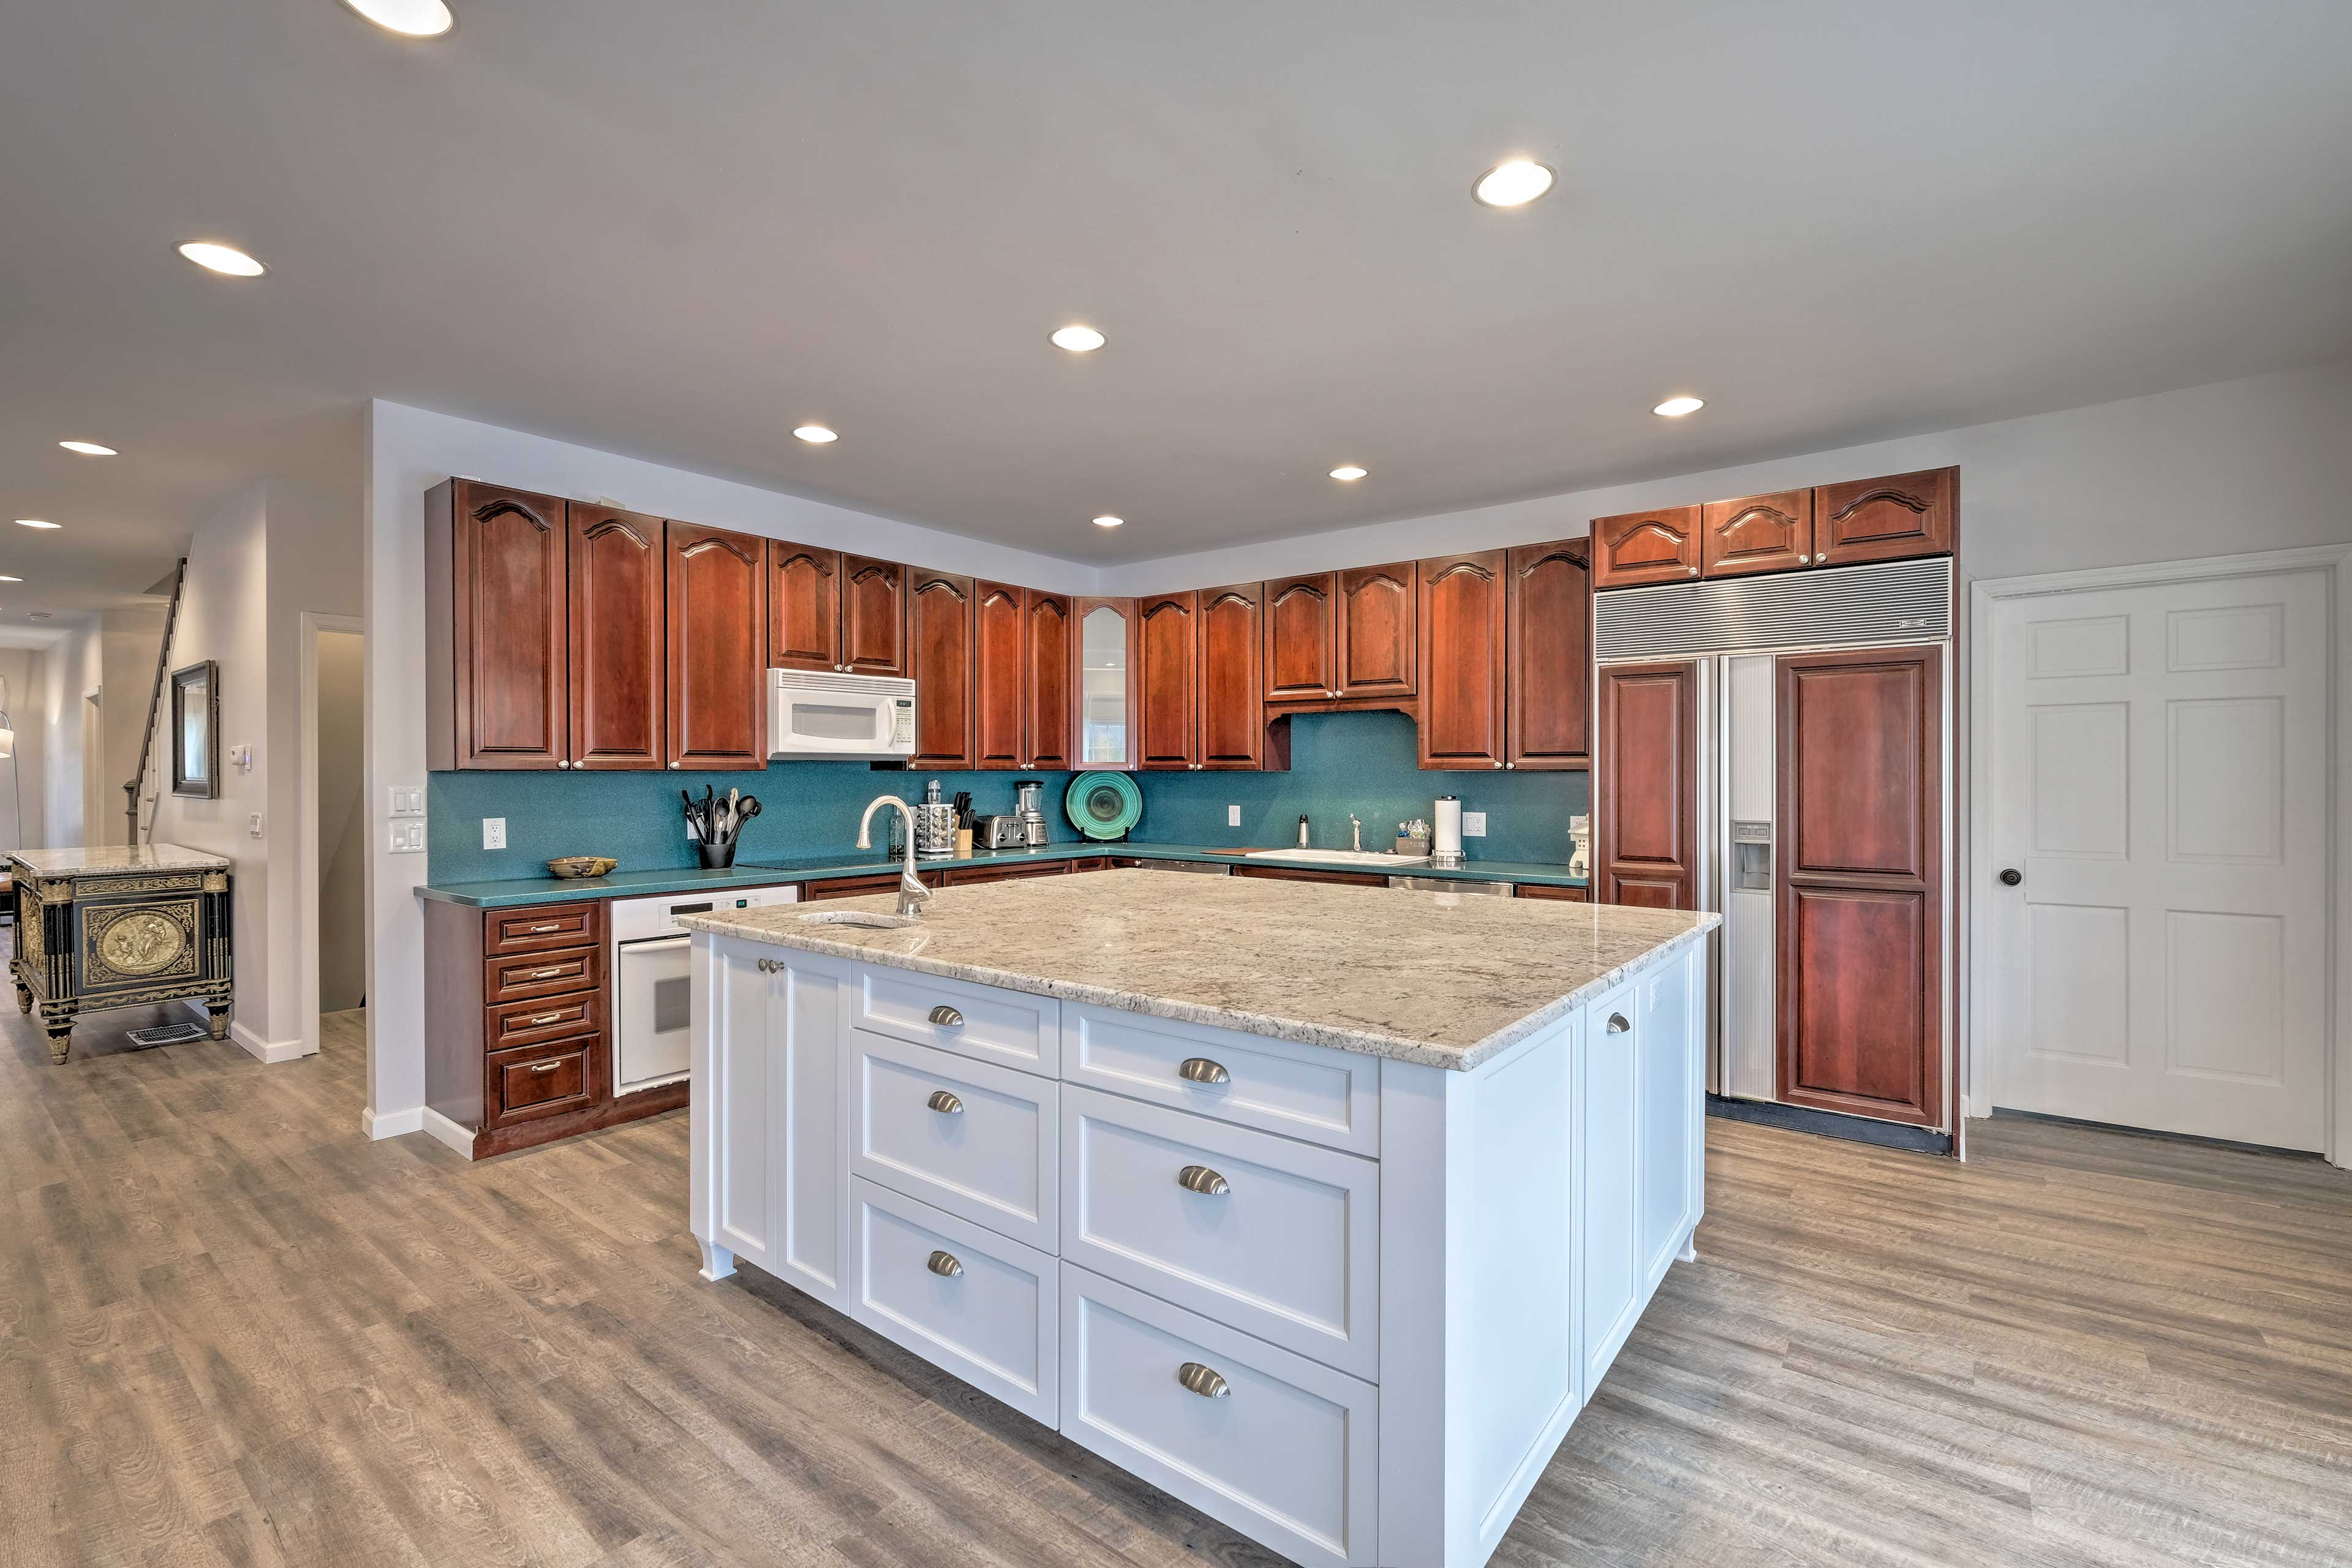 Practice your cooking skills in this large fully equipped kitchen.